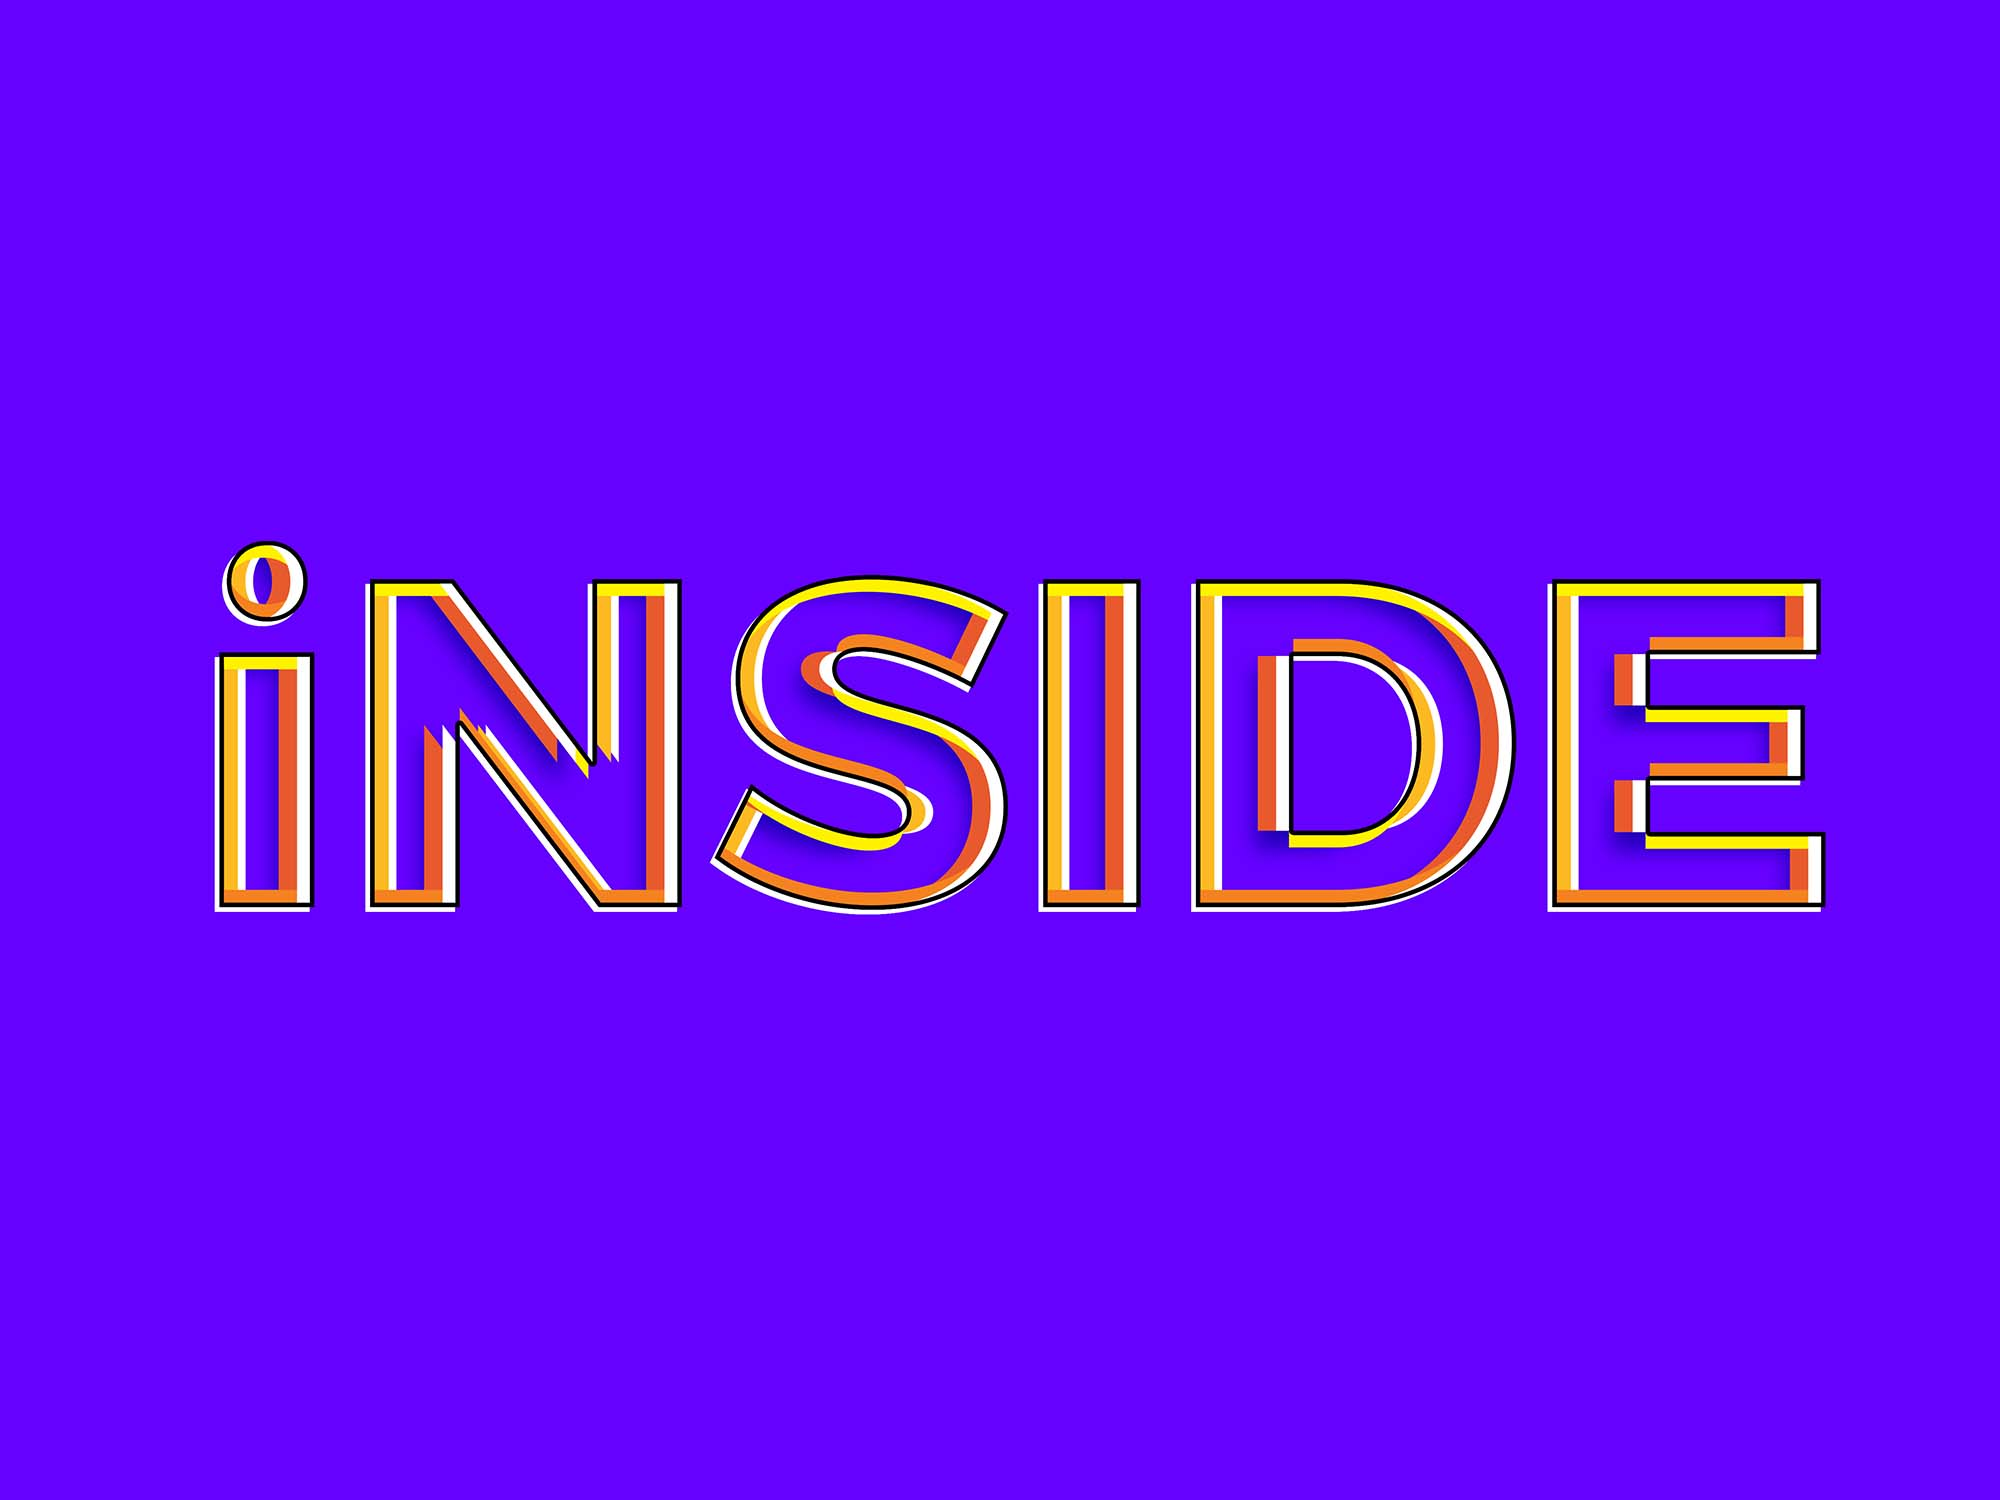 Inside Photoshop Text Effect